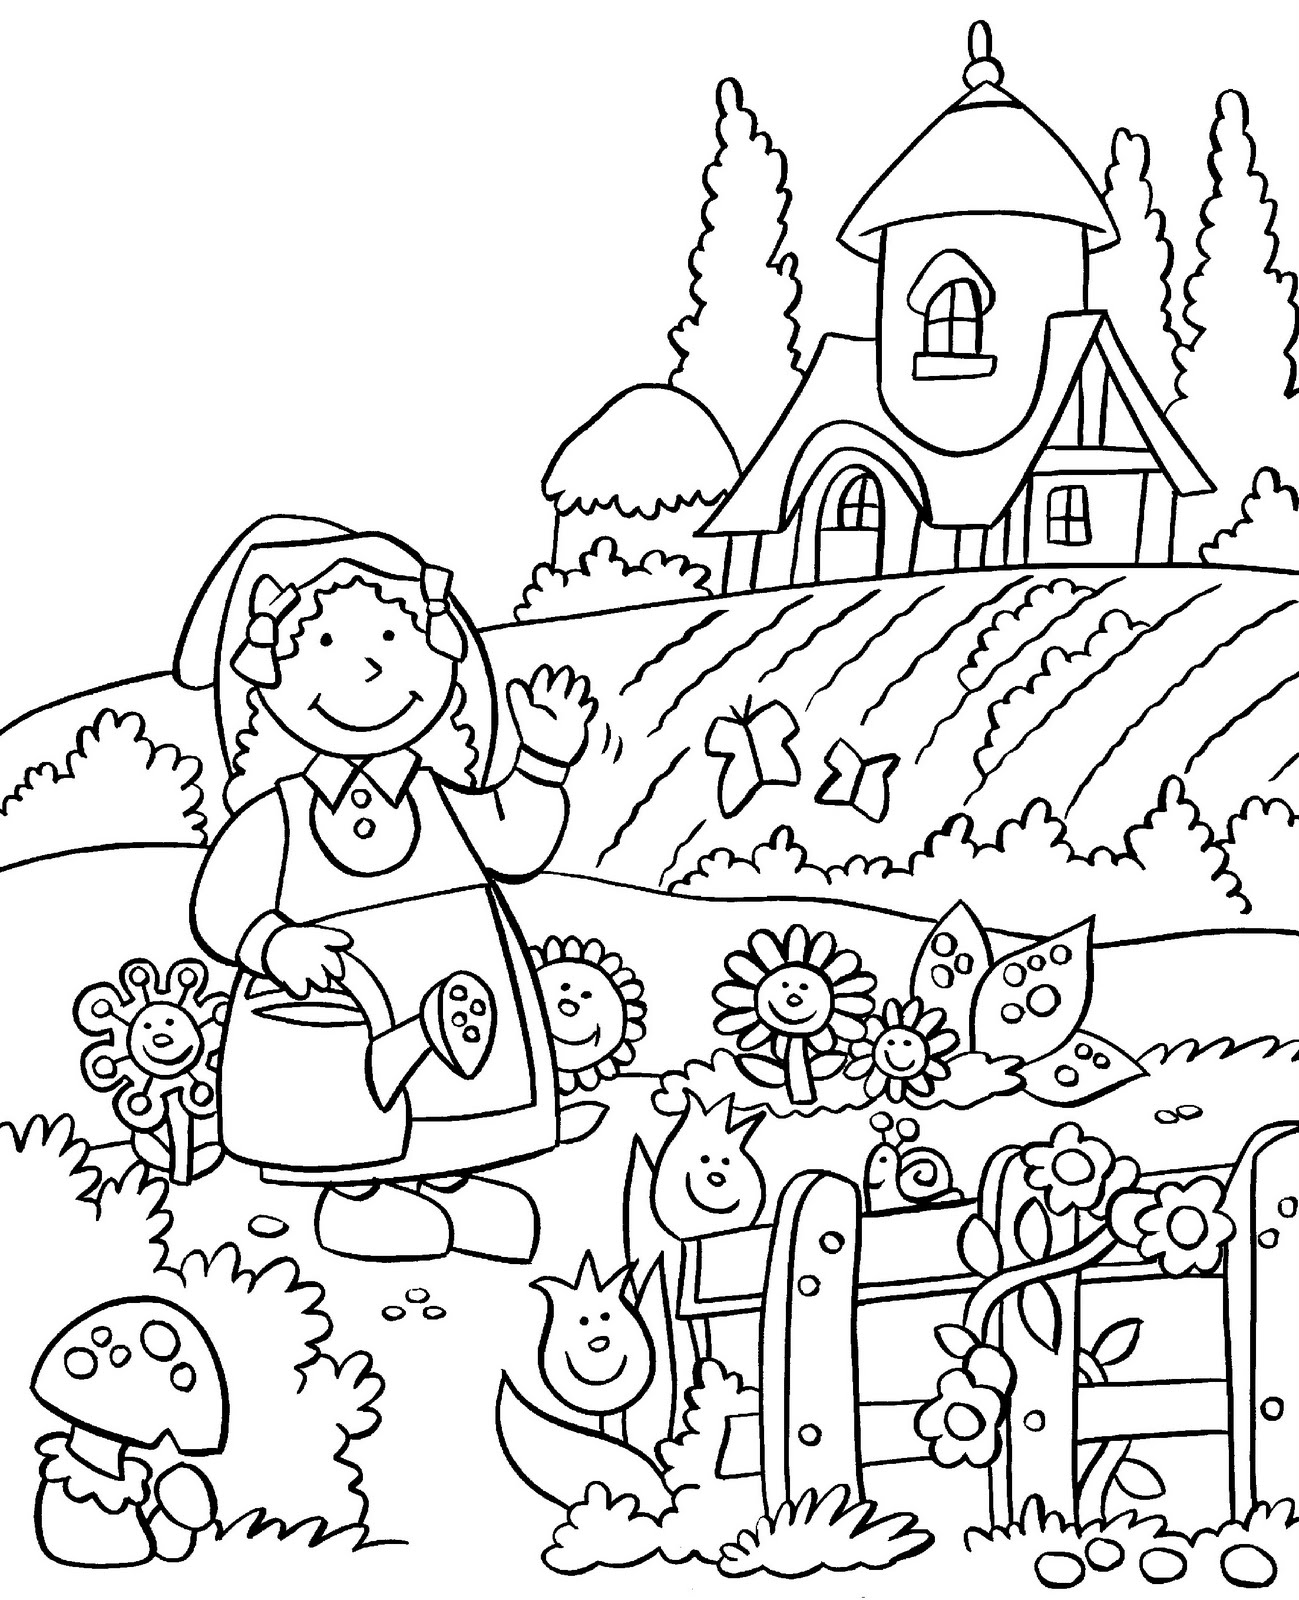 garden coloring gardening coloring pages to download and print for free garden coloring